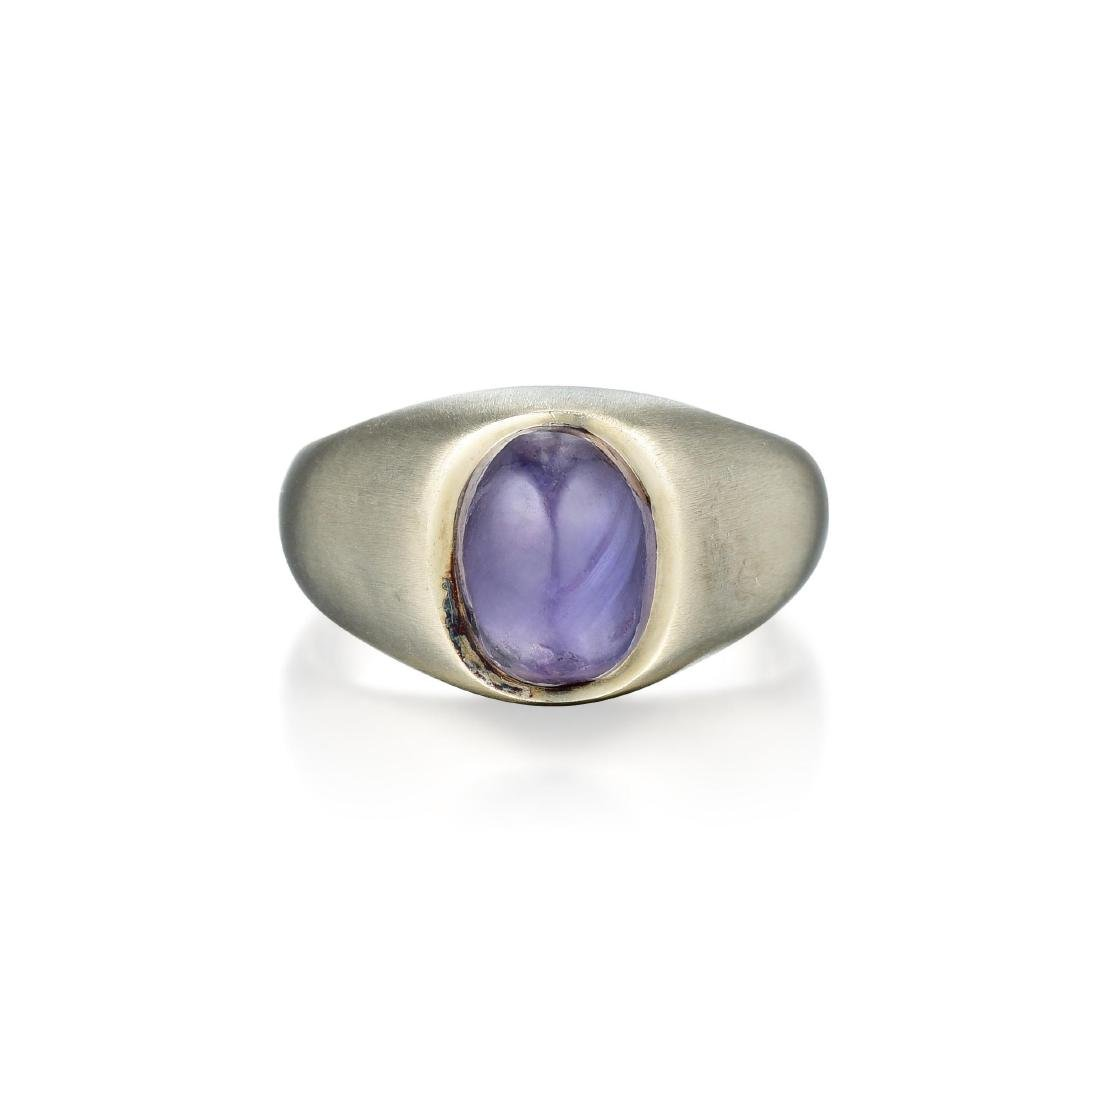 A 14K White Gold Purple Sapphire Cabochon Ring